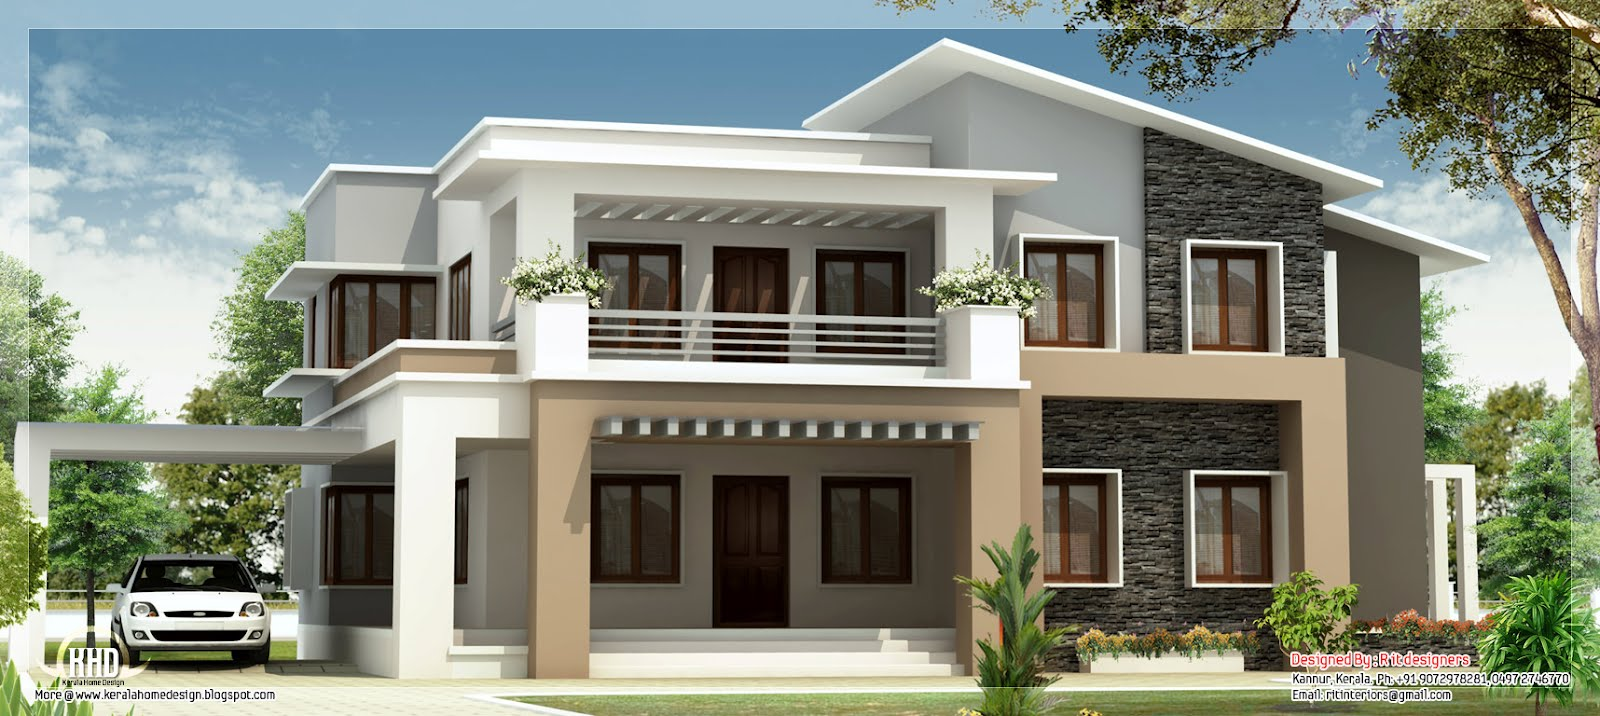 Modern mix double floor home design kerala home design for Two floor house design